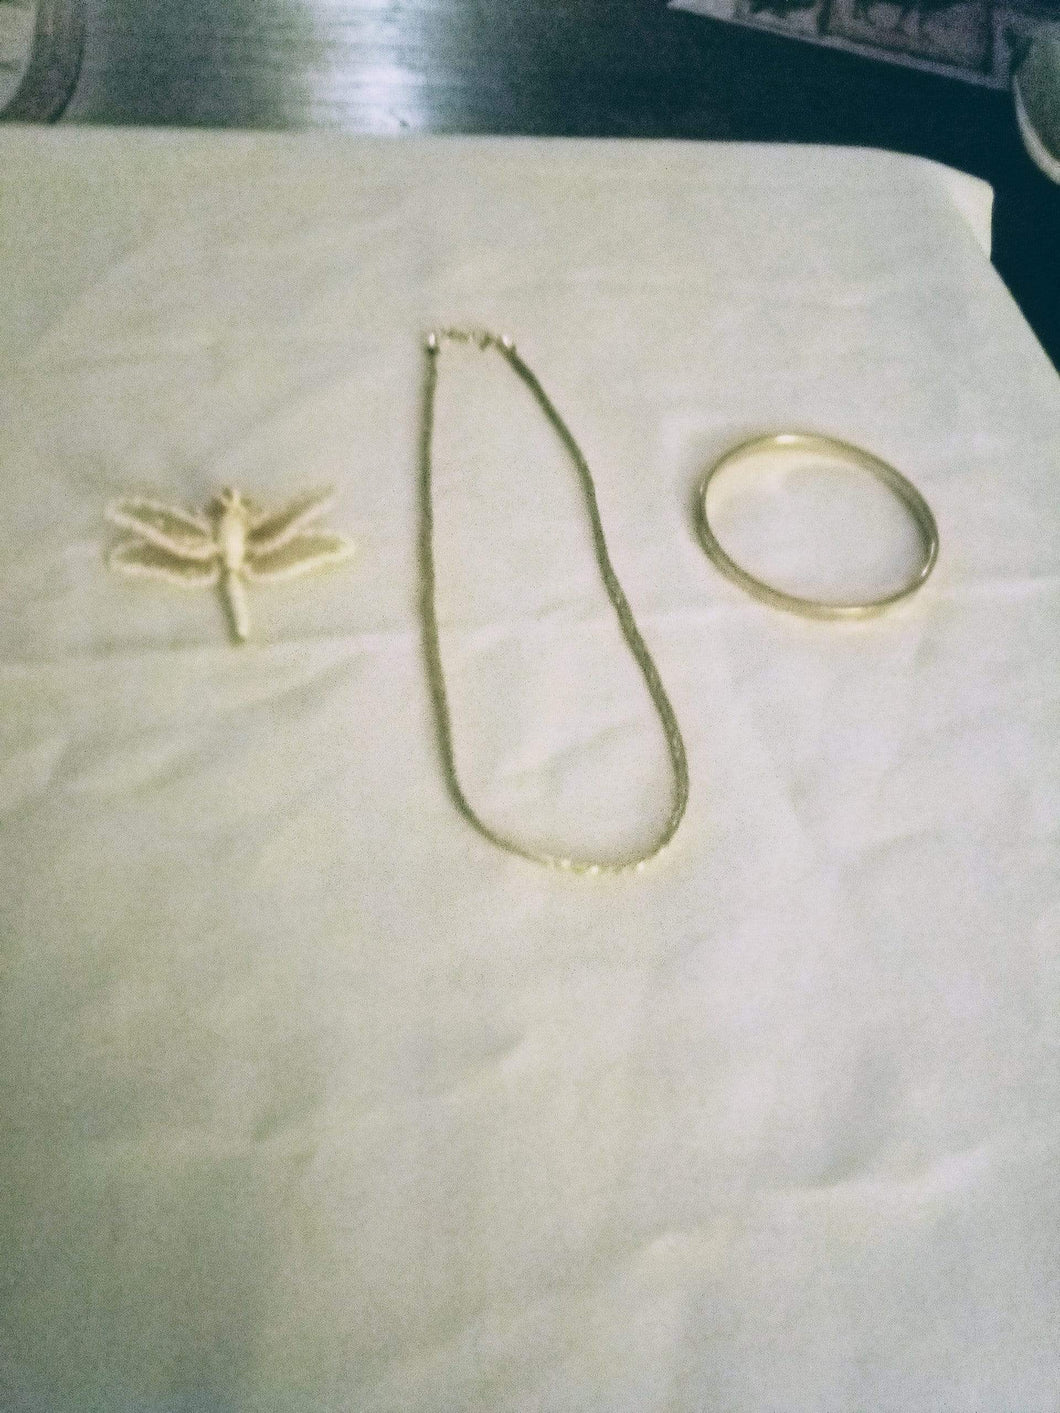 Monet marked three piece lot - B&P'sringsnthings